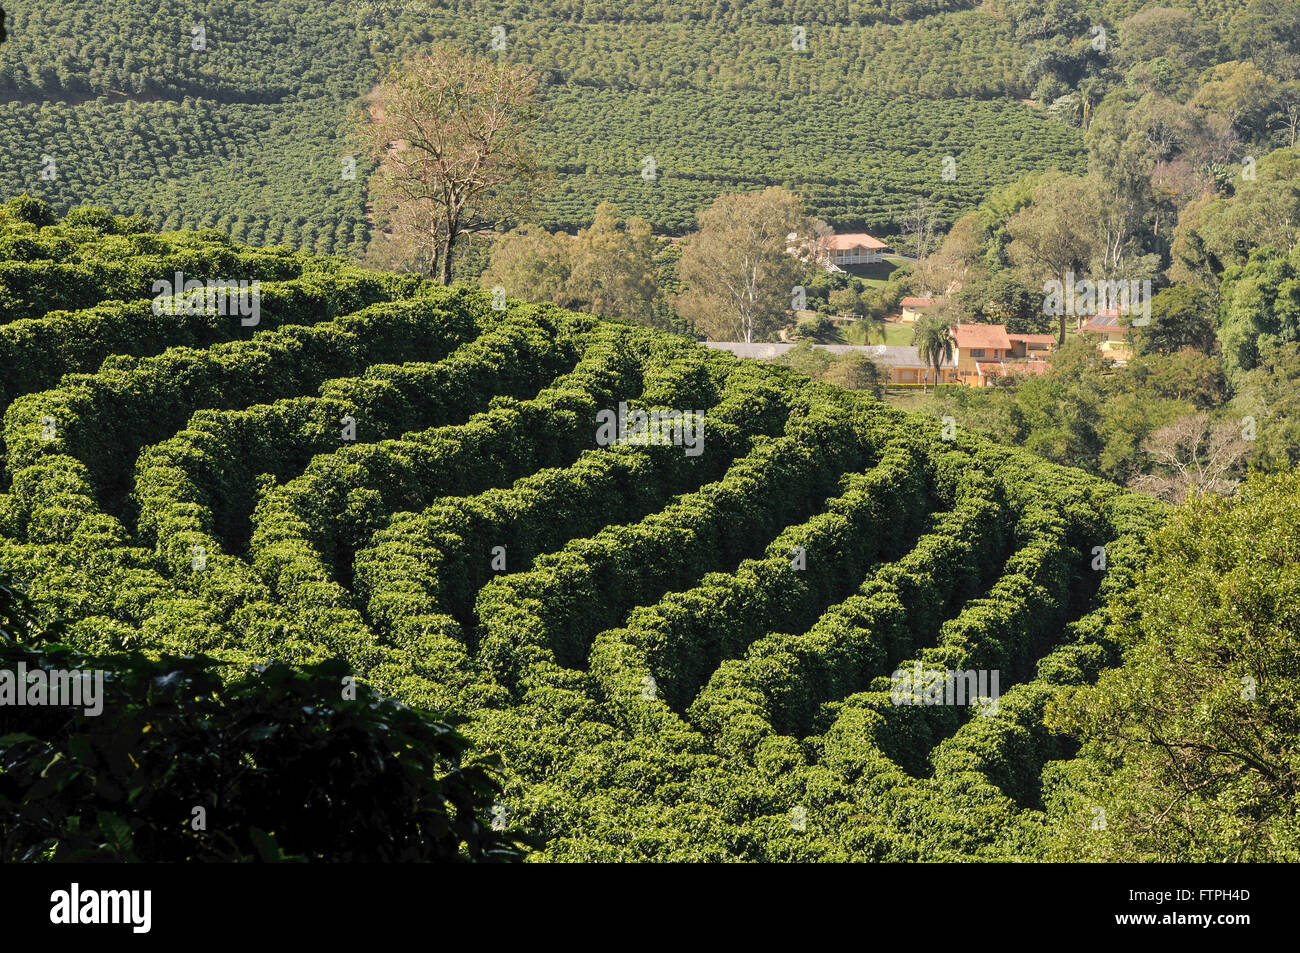 Coffee plantation in rural properties around the city - Stock Image